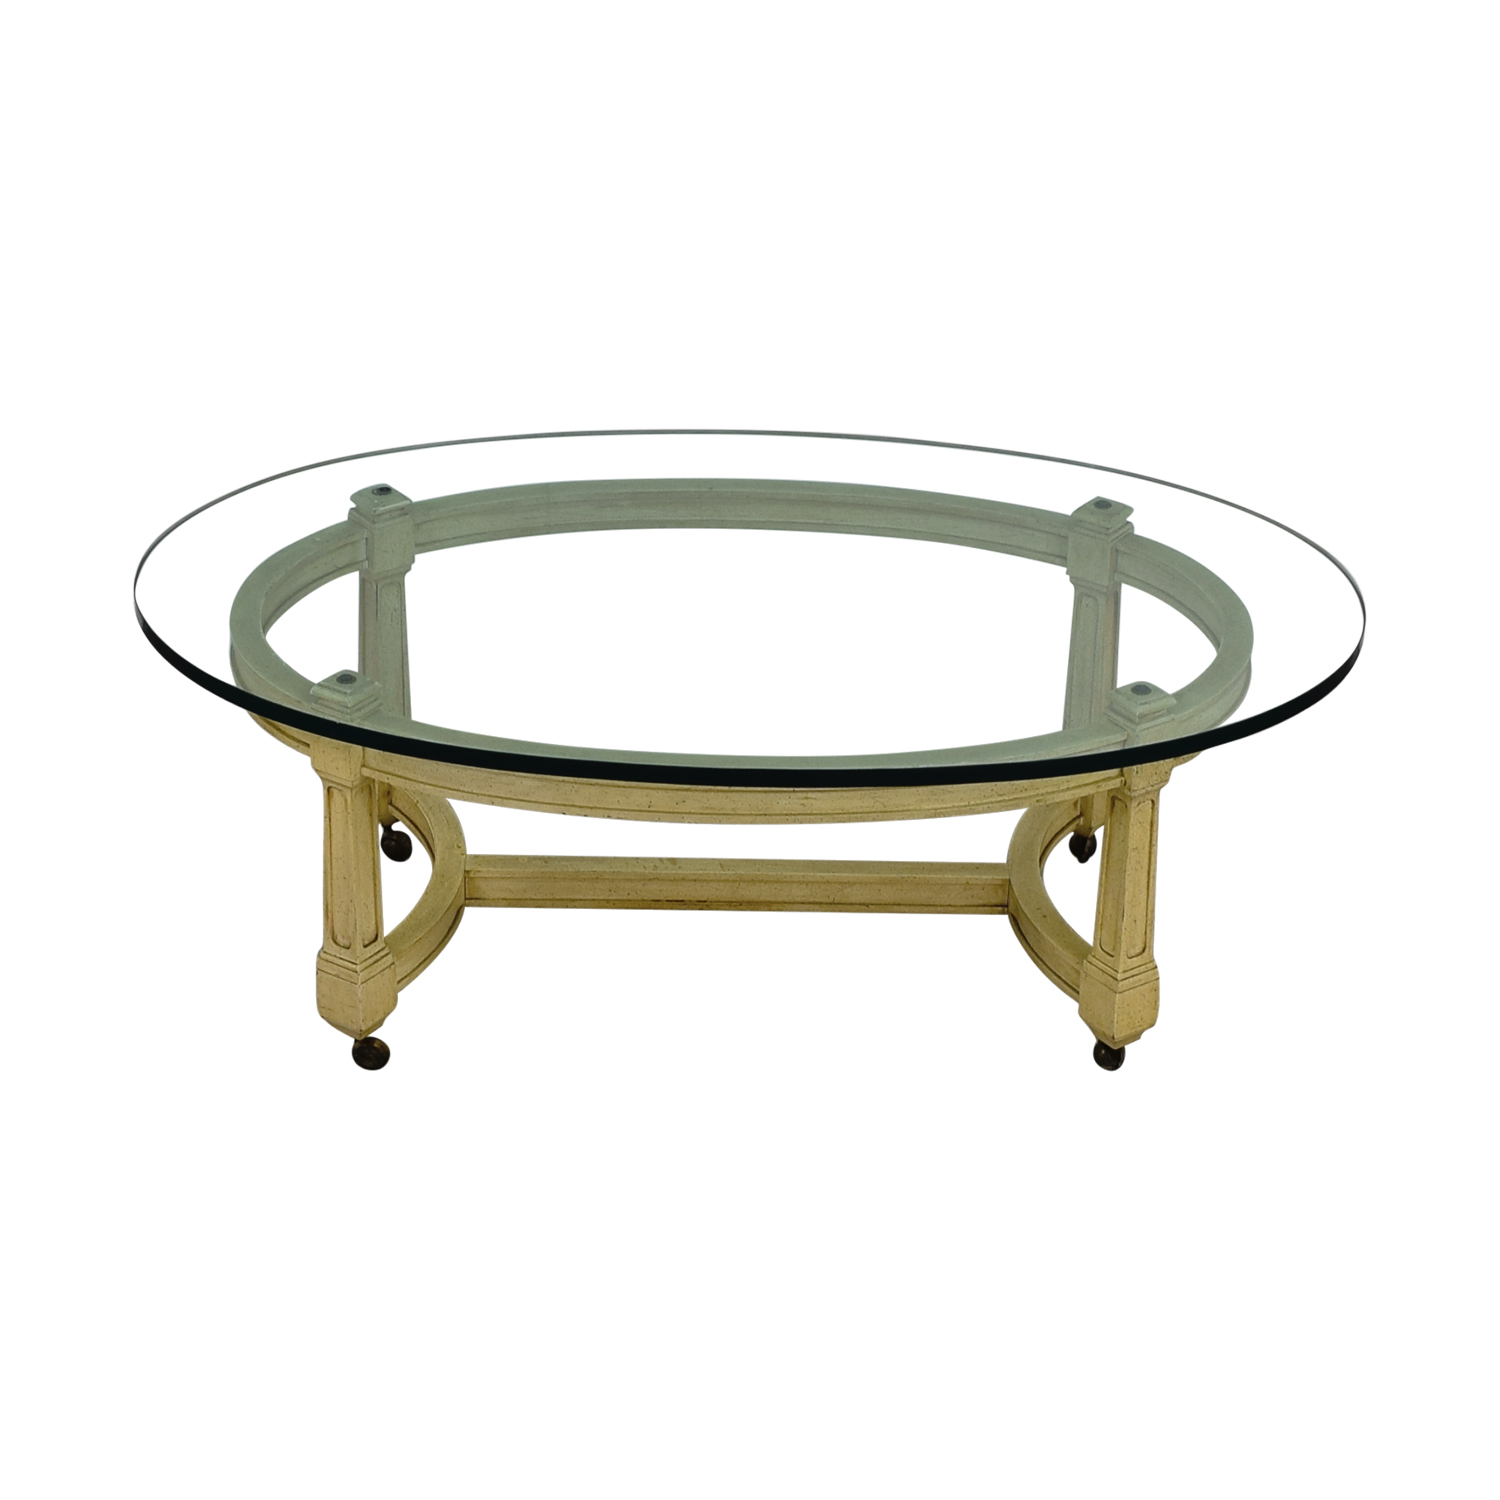 61 off off white and glass oval coffee table on castors tables Coffee table buy